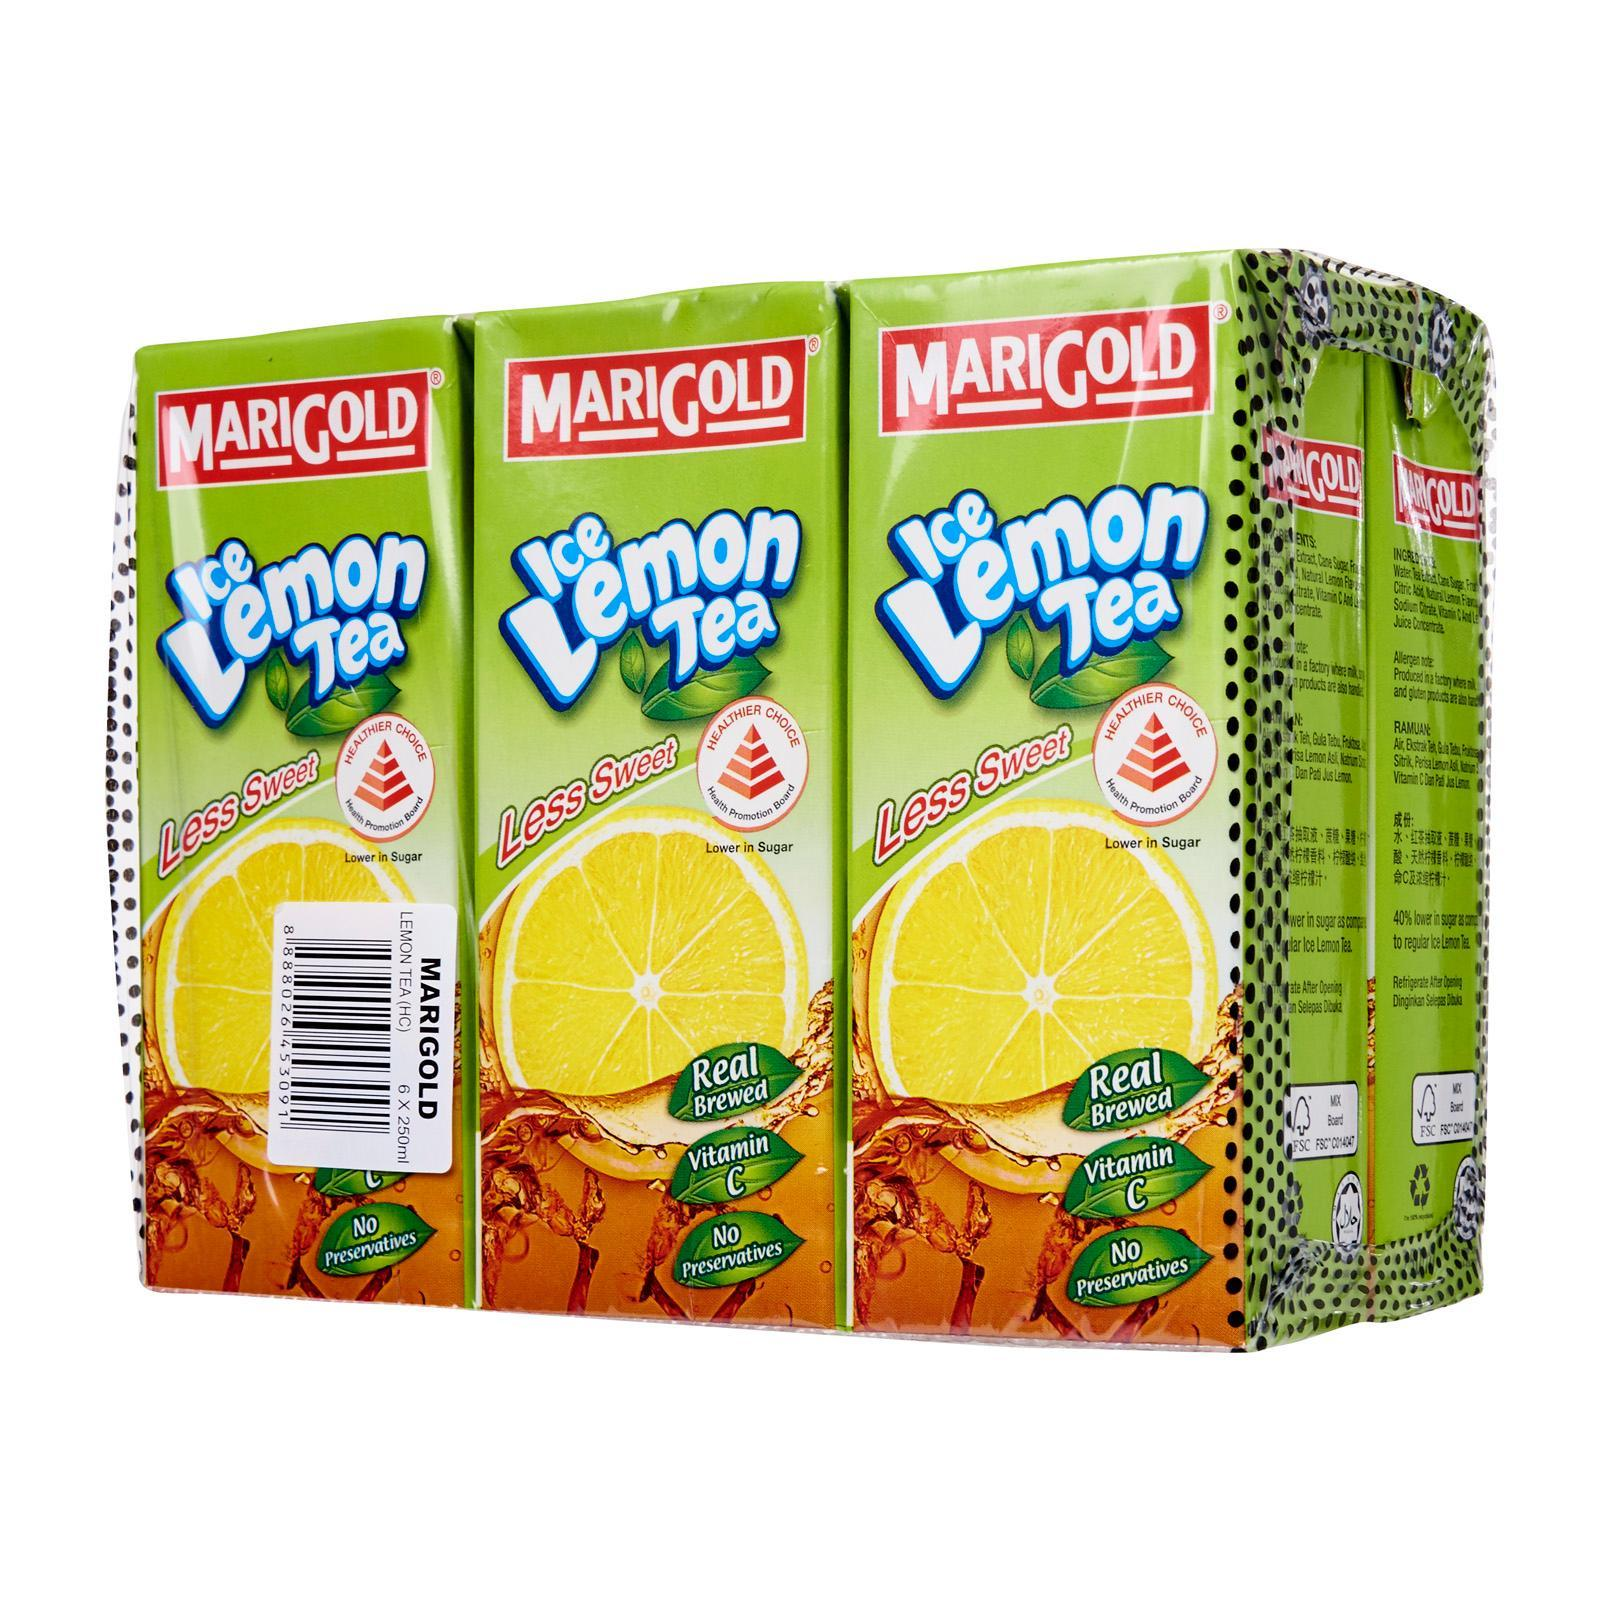 MARIGOLD Ice Lemon Tea Less Sugar 6x250ml